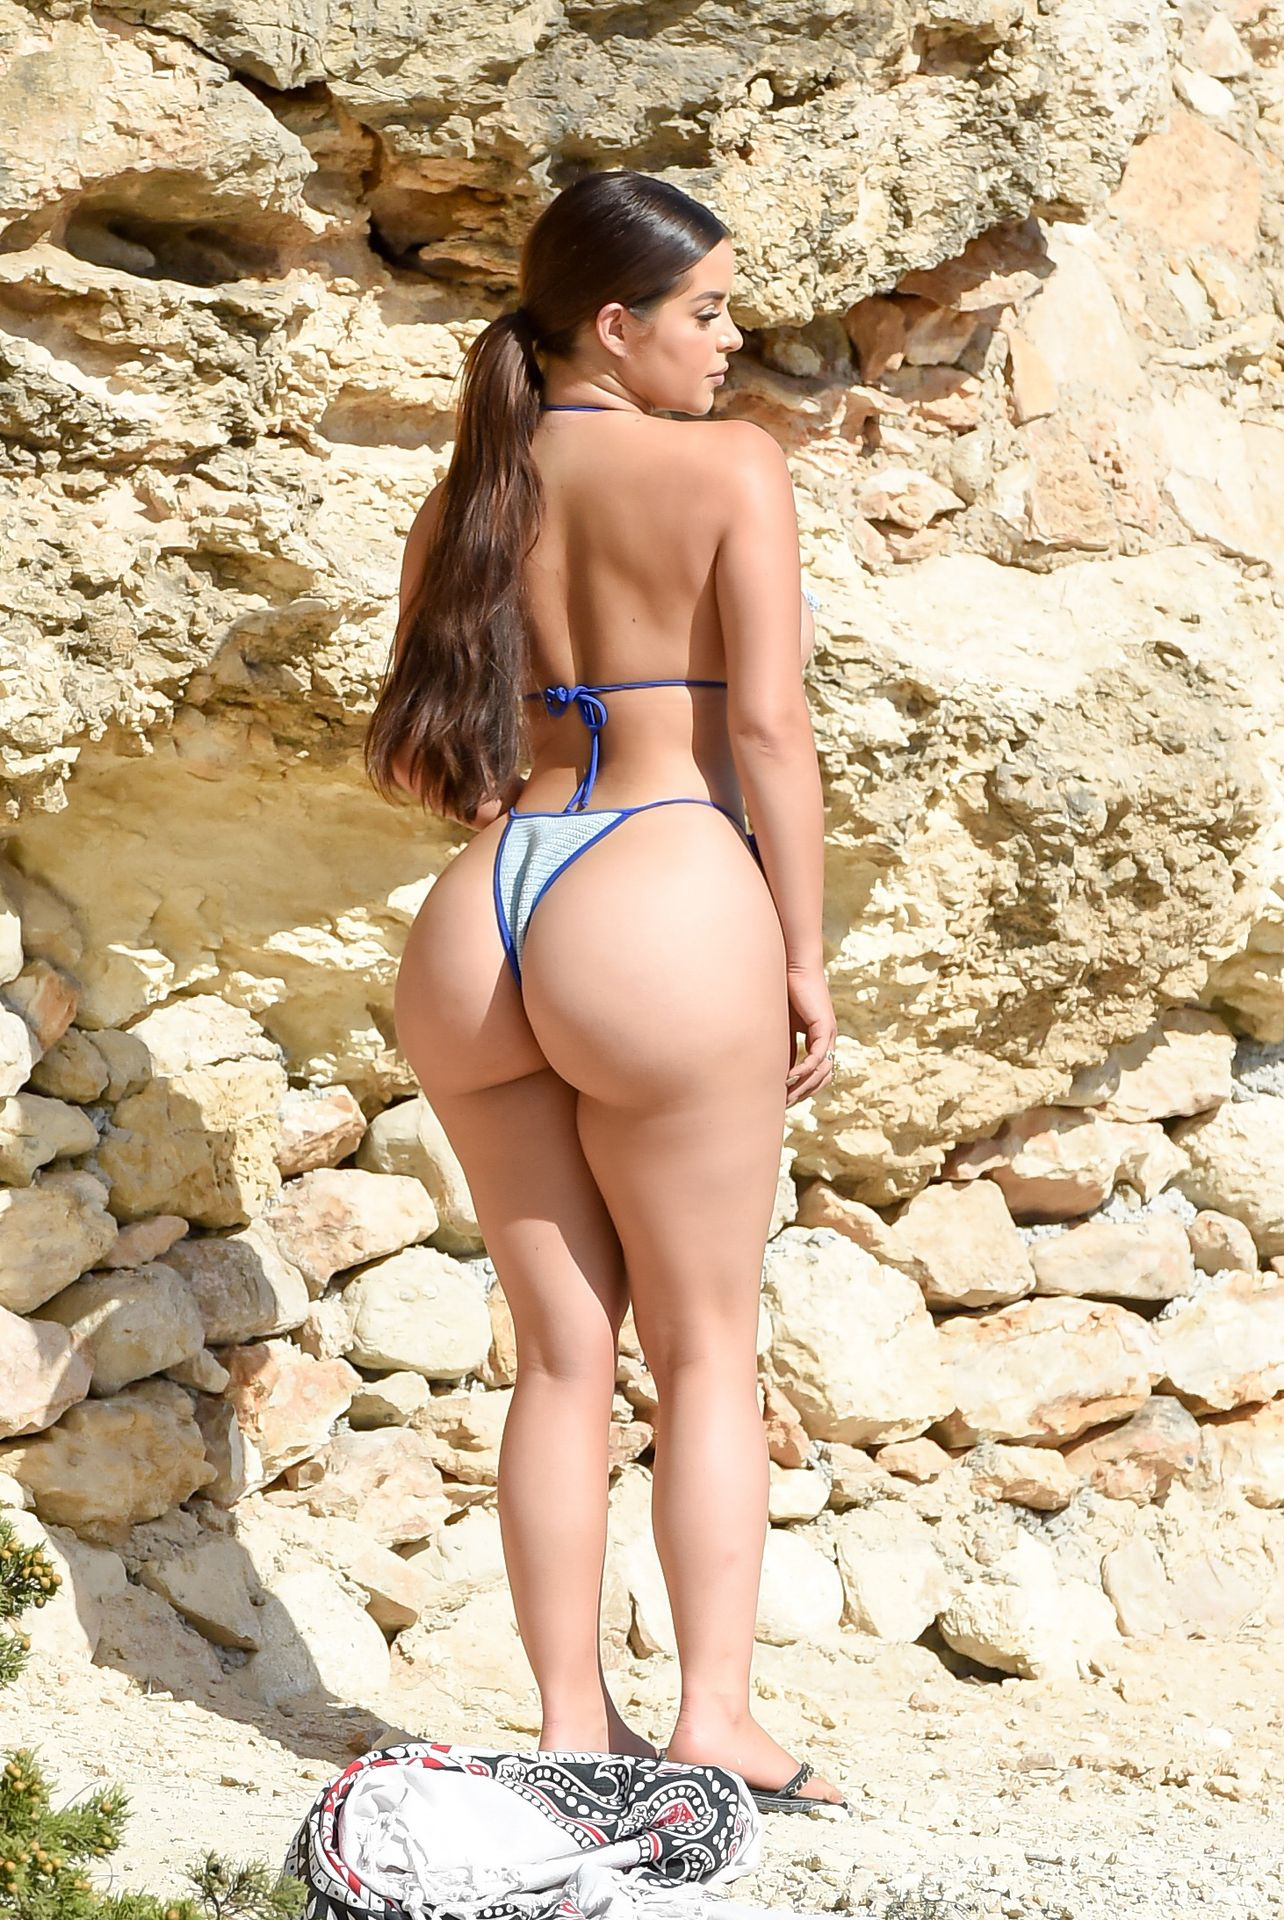 Demi Rose Mawby Huge Ass, Wears a Skimpy Bikini on a Shoot in Ibiza